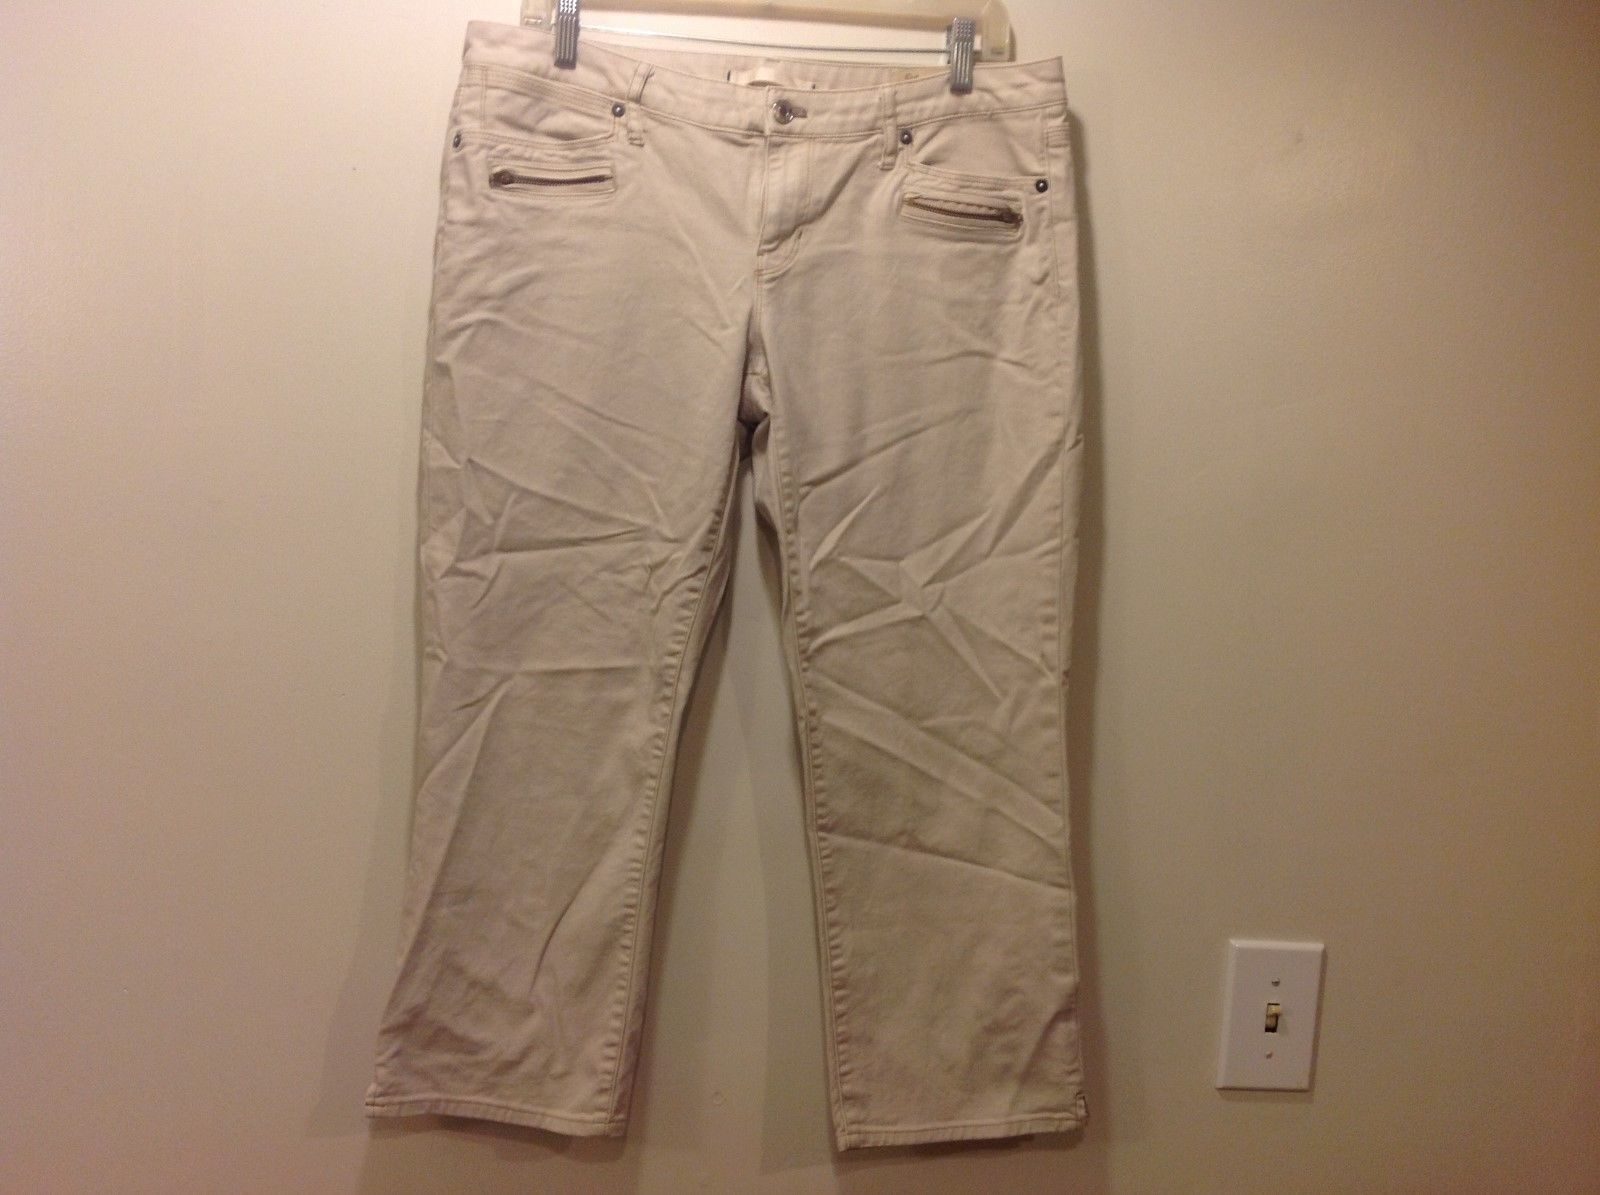 Vintage GAP Limited Edition Ladies Beige Capris Sz 30